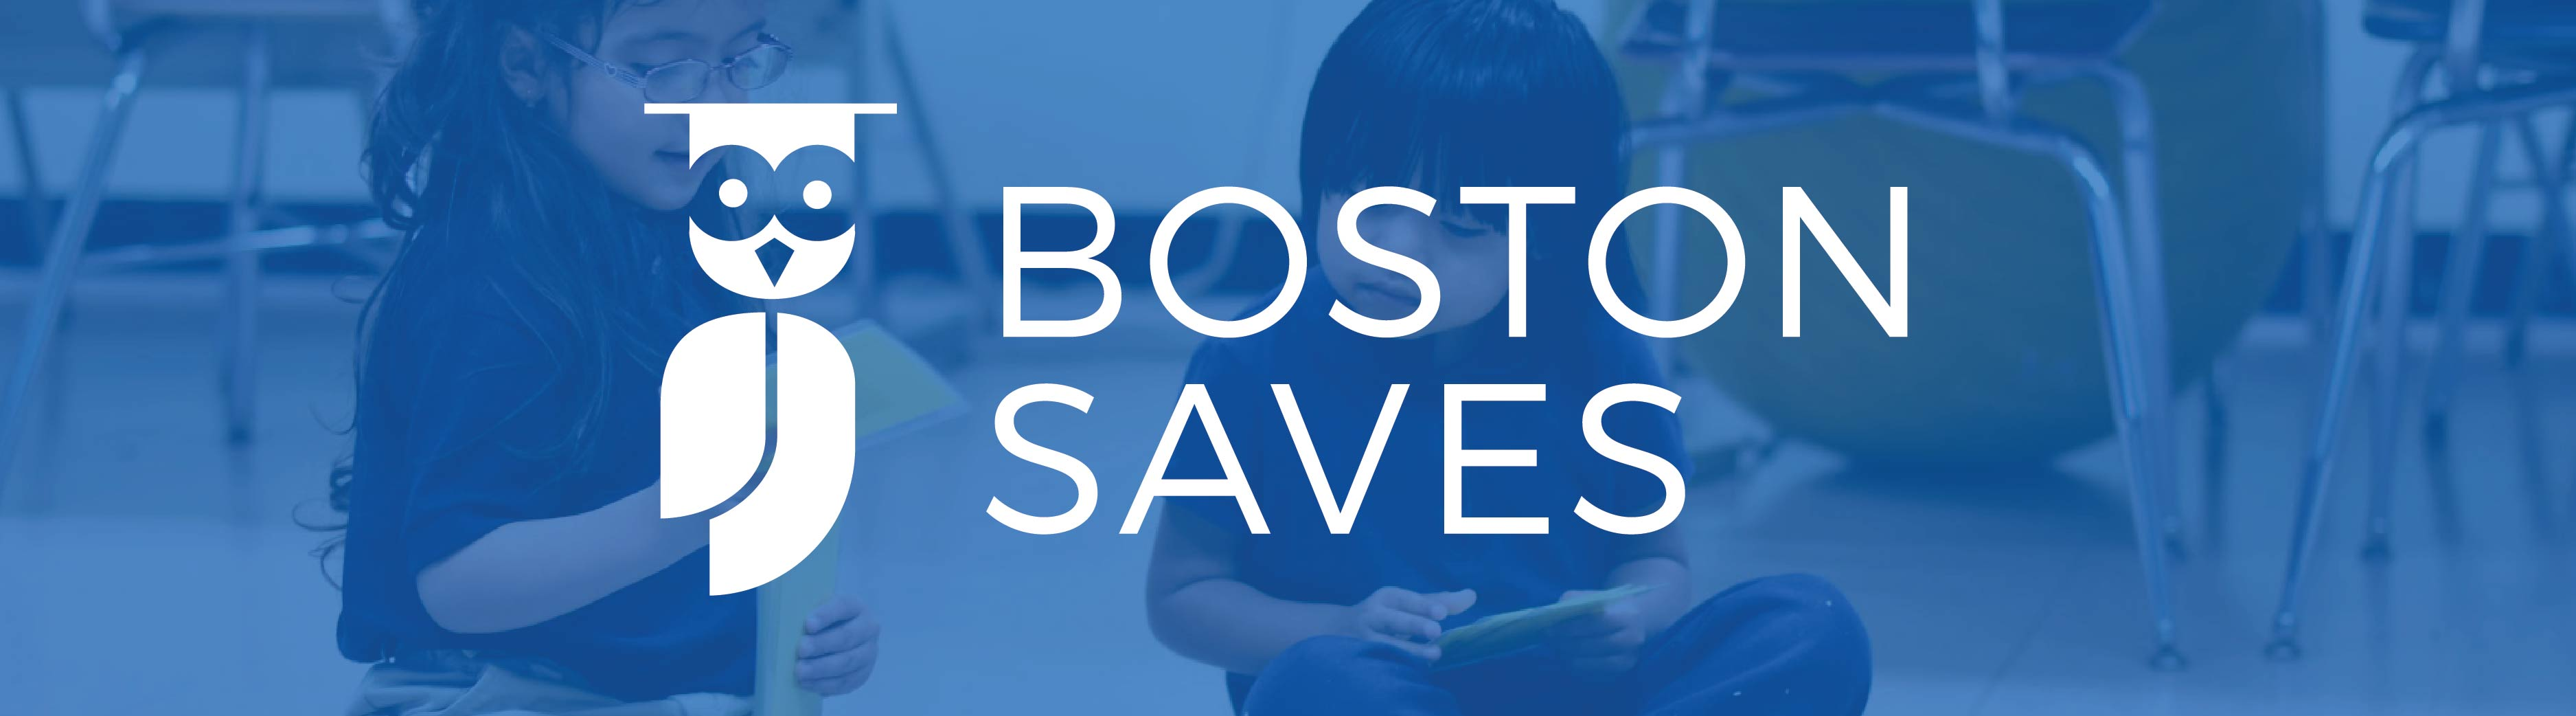 Support Boston Saves Banner